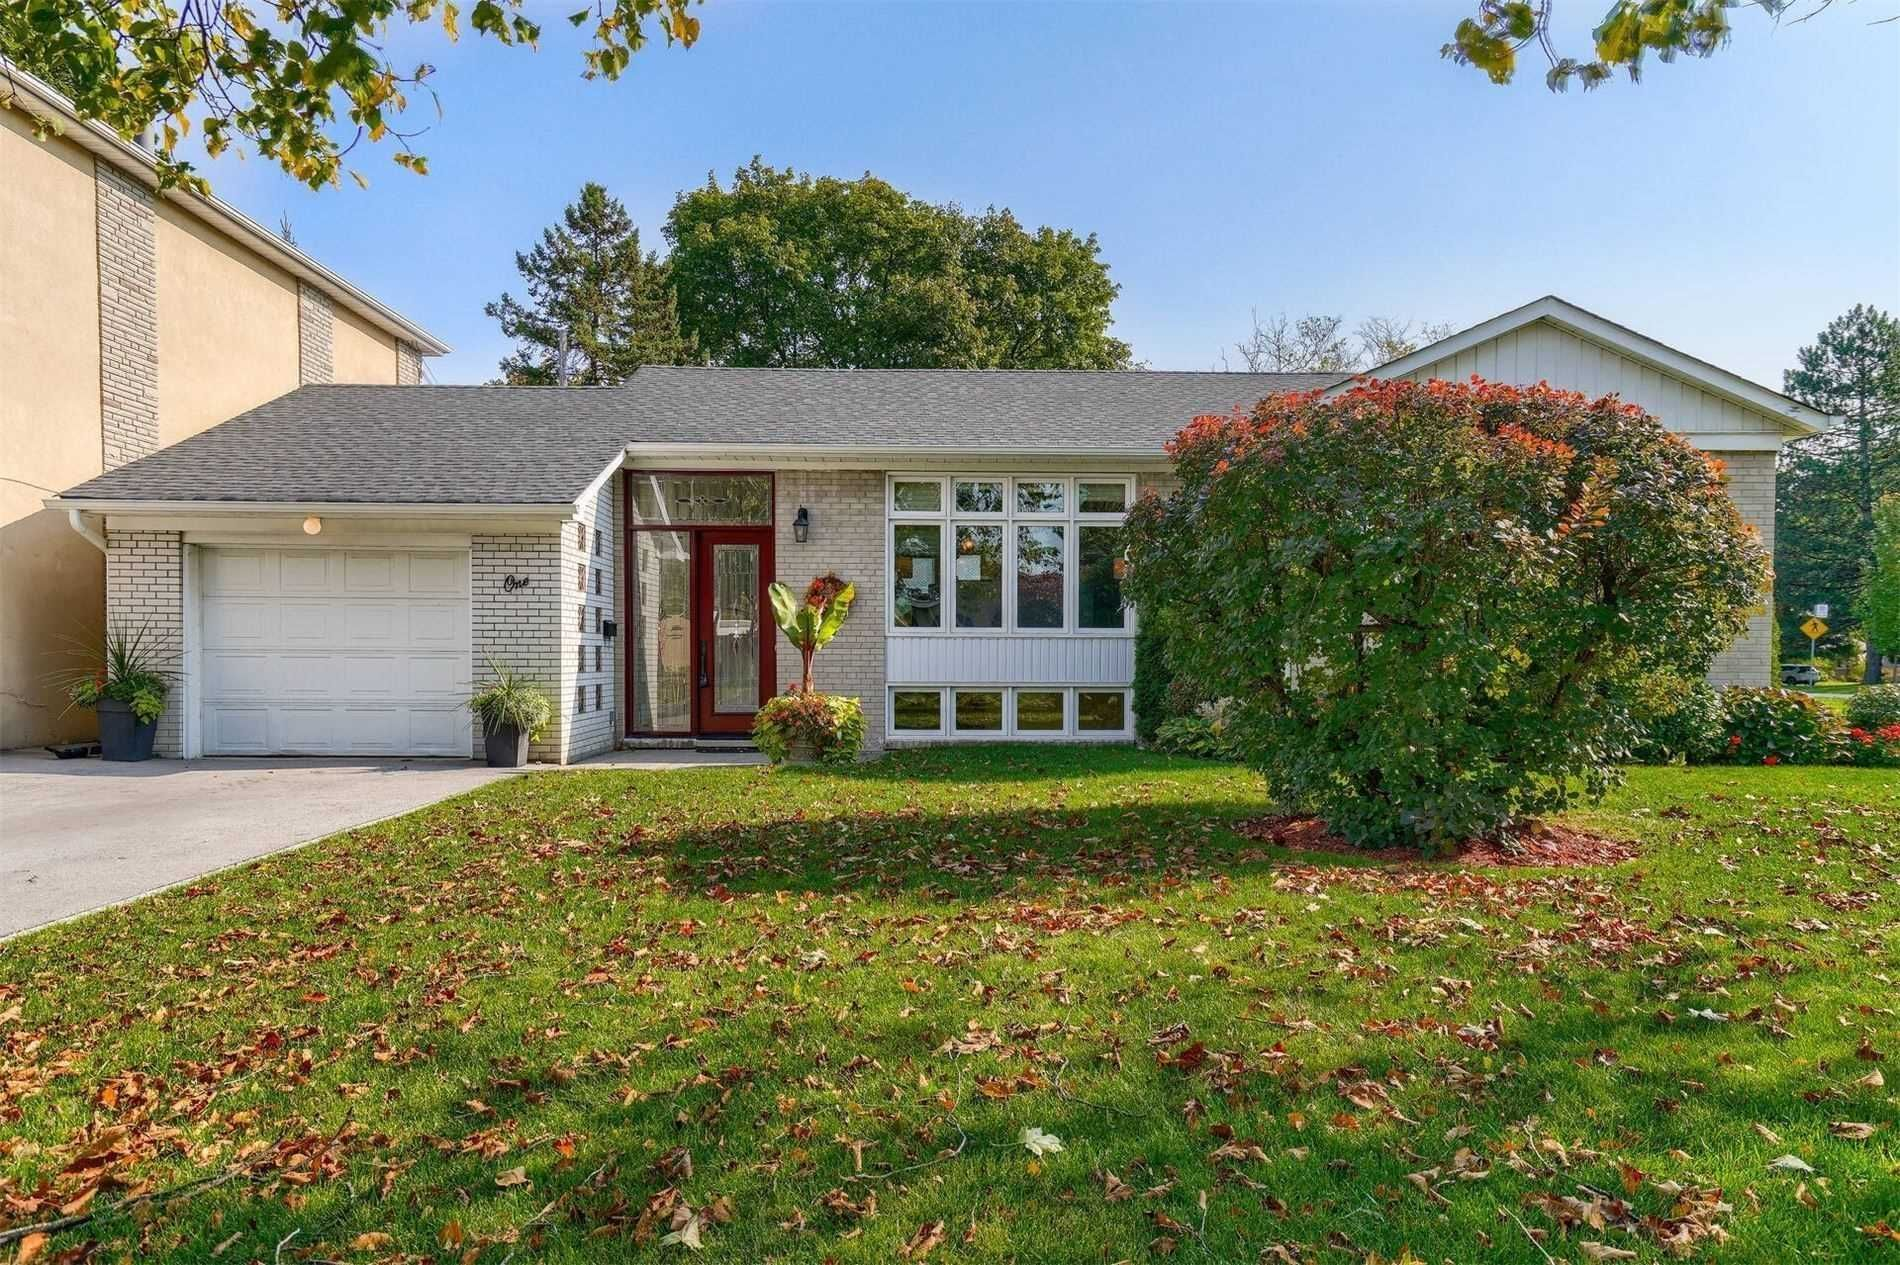 Main Photo: 1 Yewfield Crescent in Toronto: Banbury-Don Mills House (Bungalow) for lease (Toronto C13)  : MLS®# C4997589